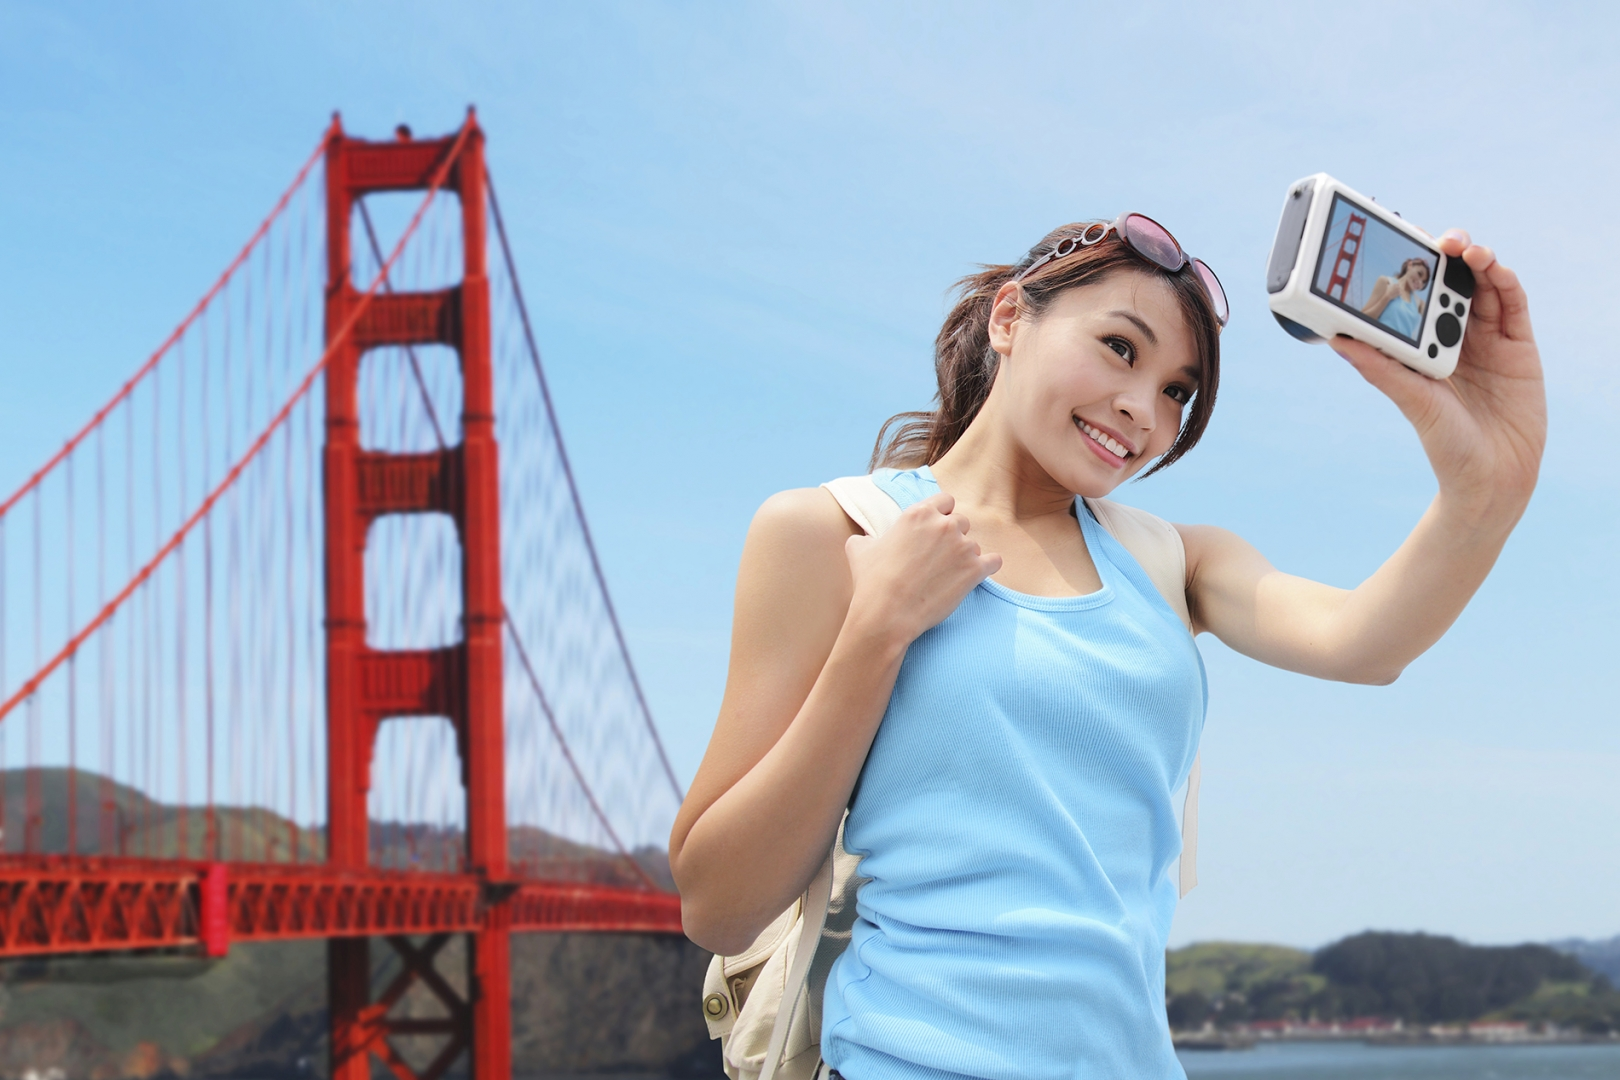 A tourist takes a picture in front of the Golden Gate Bridge